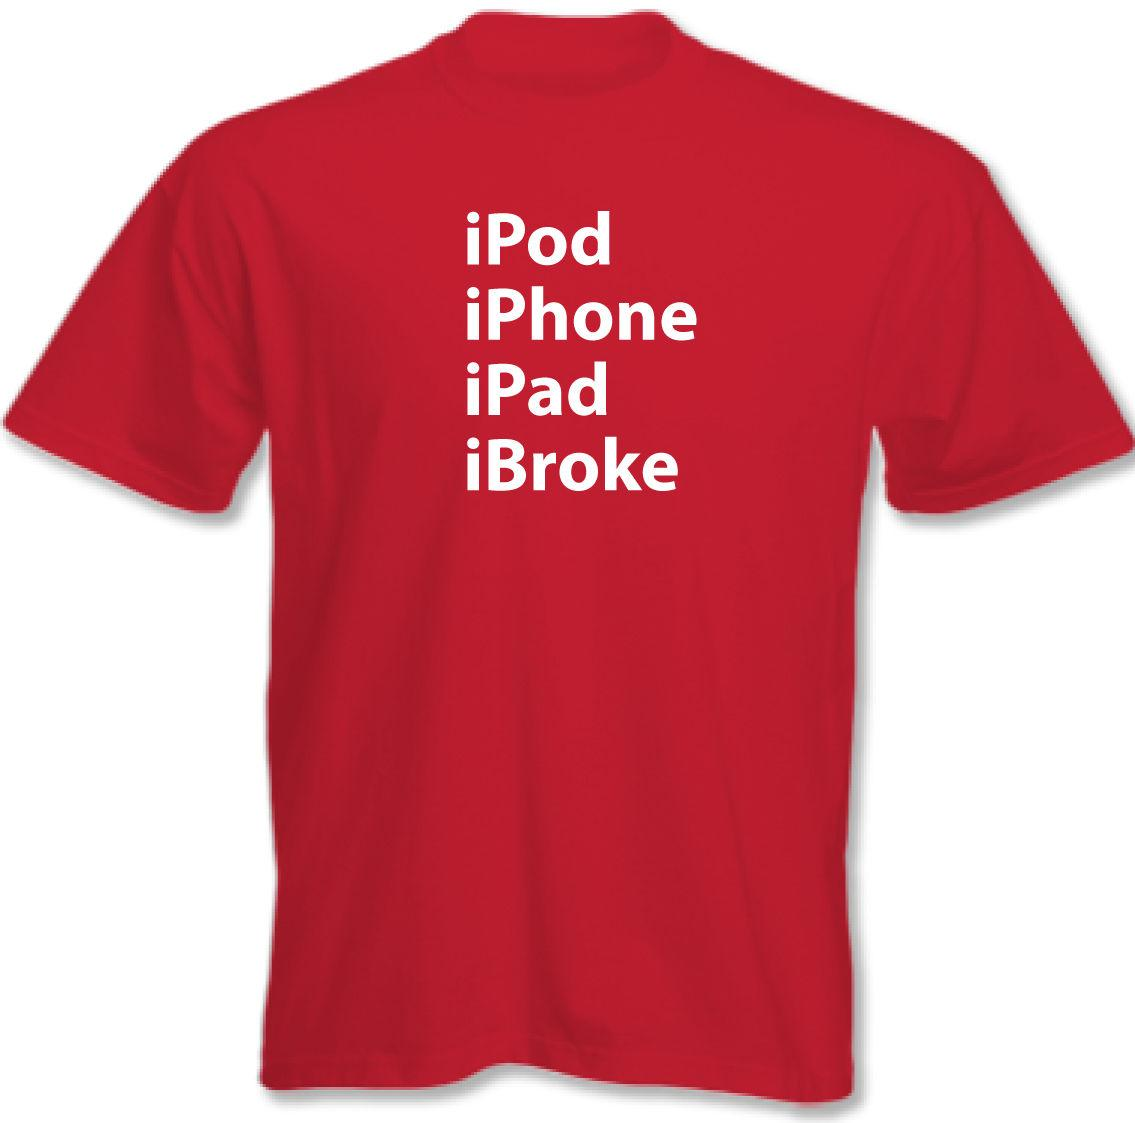 Ipod Iphone Ipad Ibroke Mens Funny T Shirt Small Funny Unisex Casual